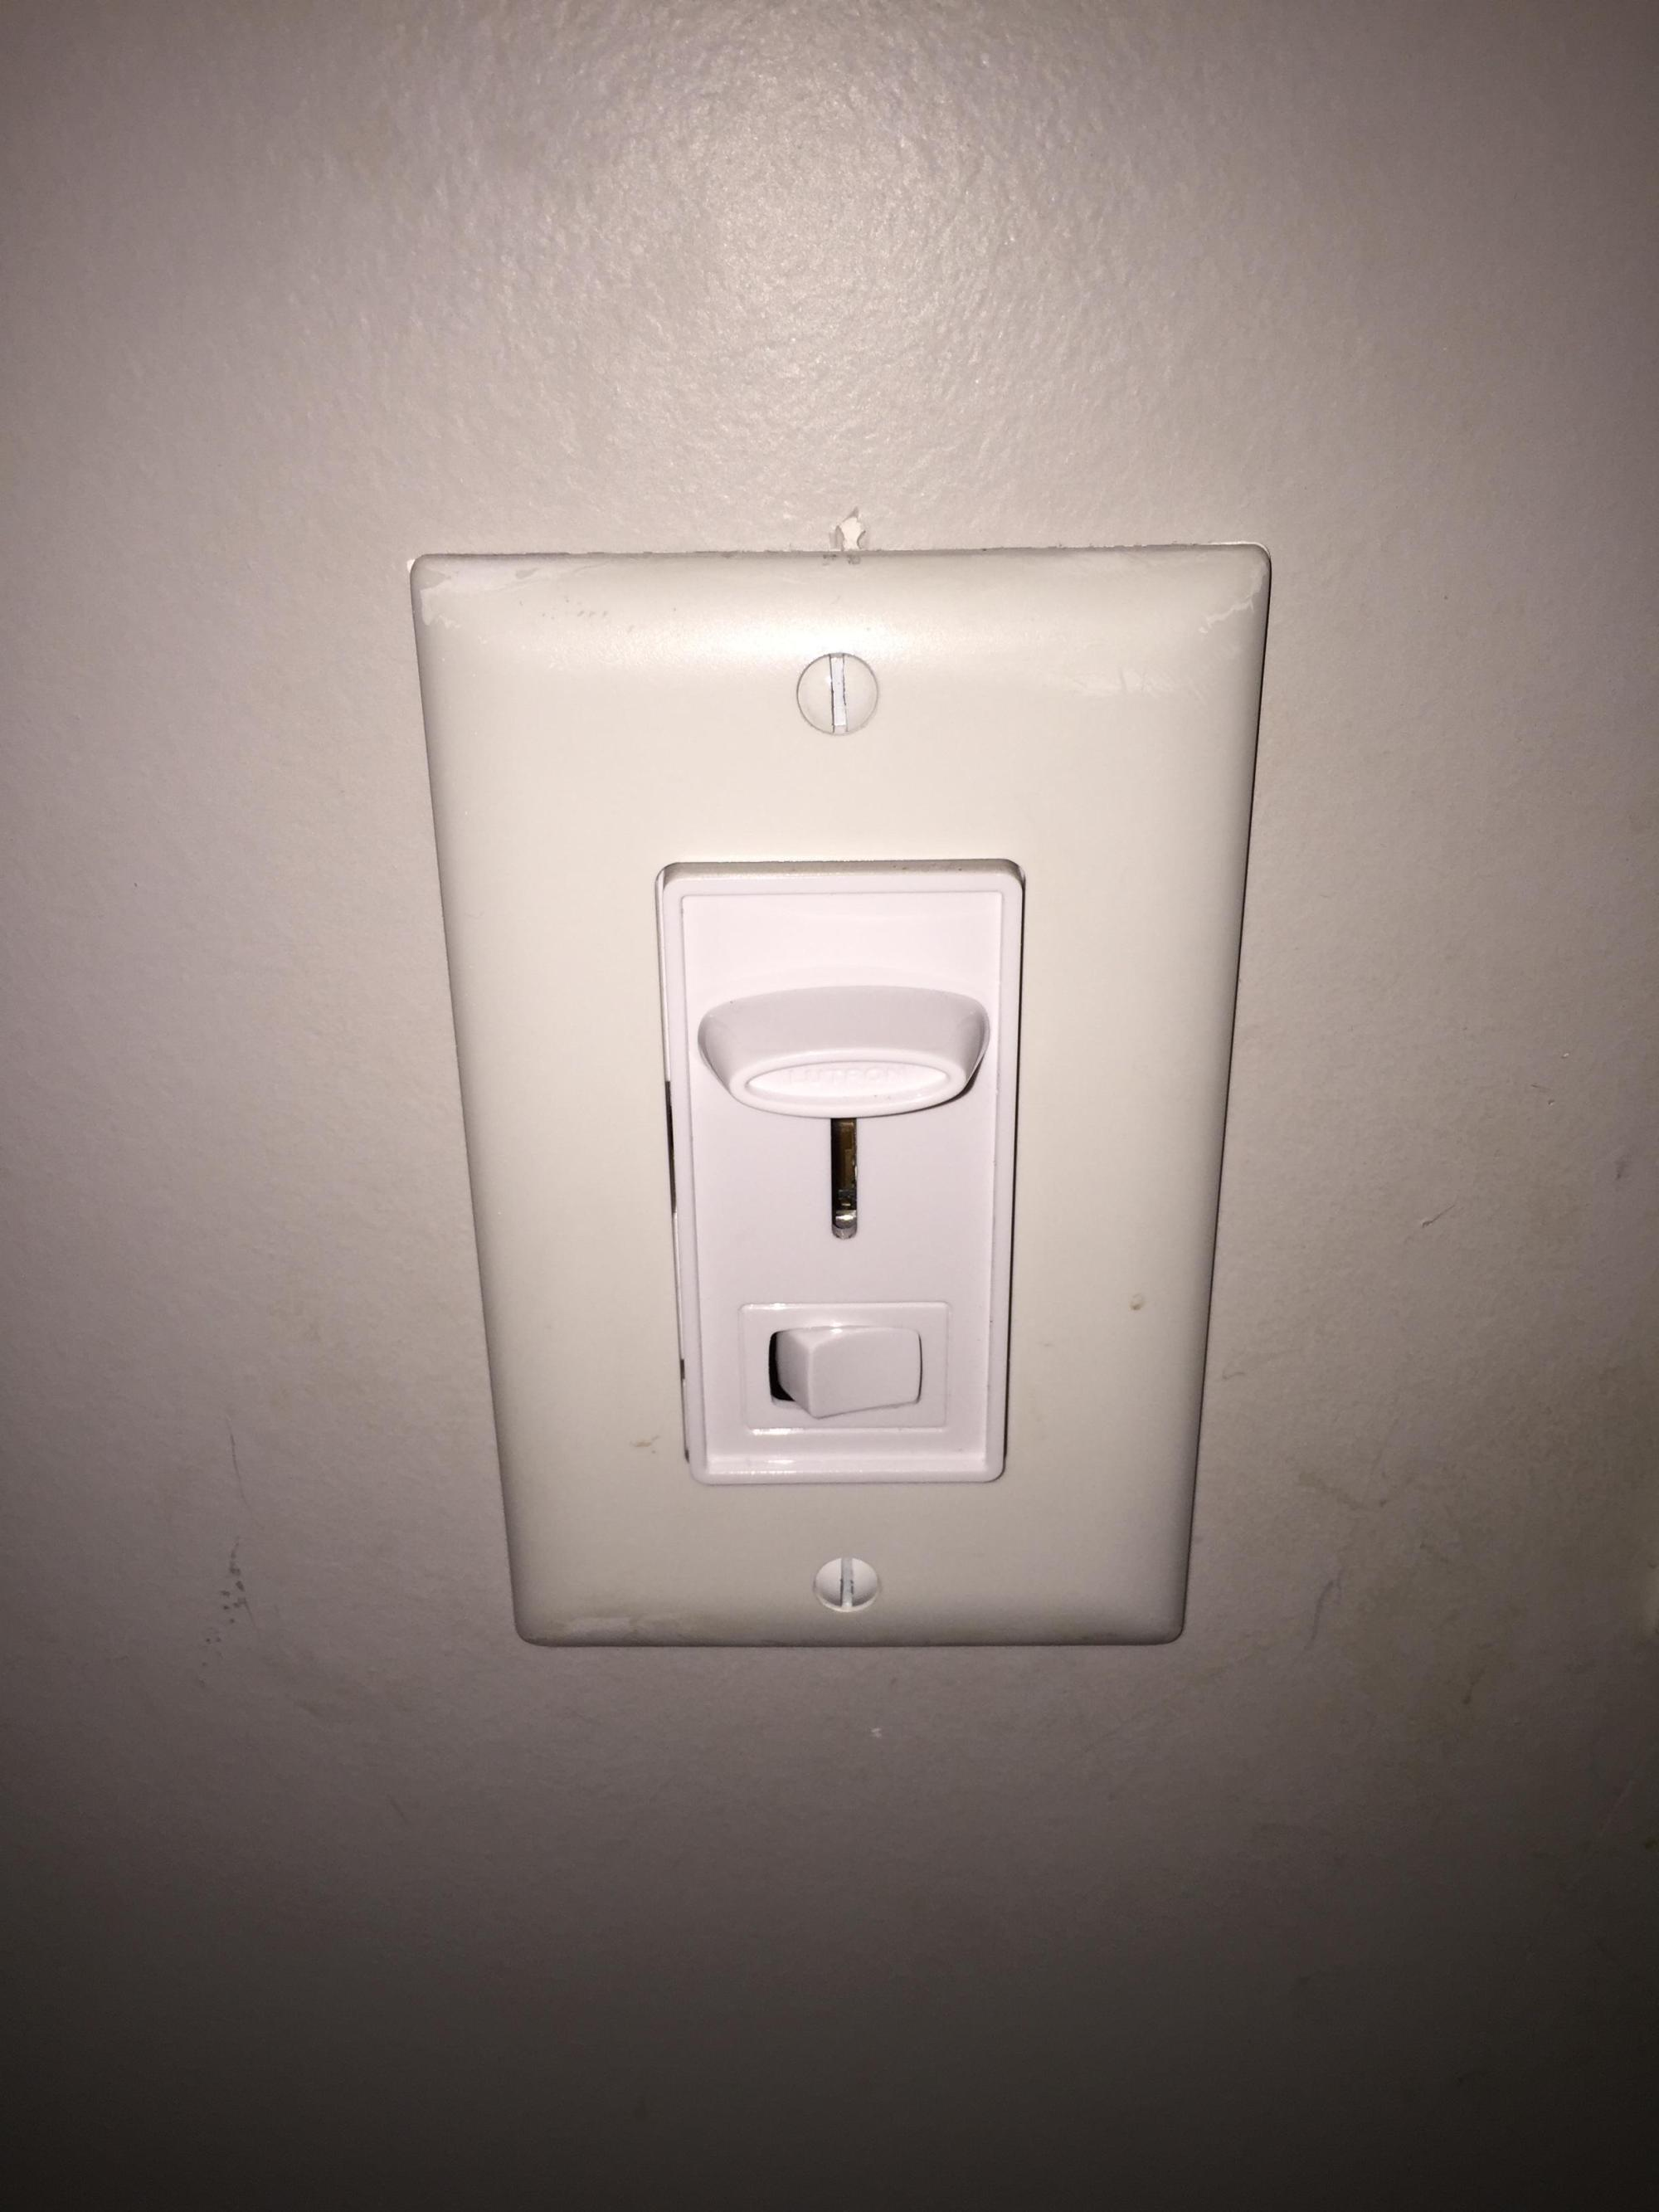 hight resolution of help wiring ceiling fan with dimmer switch home improvement stack help wiring ceiling fan with dimmer